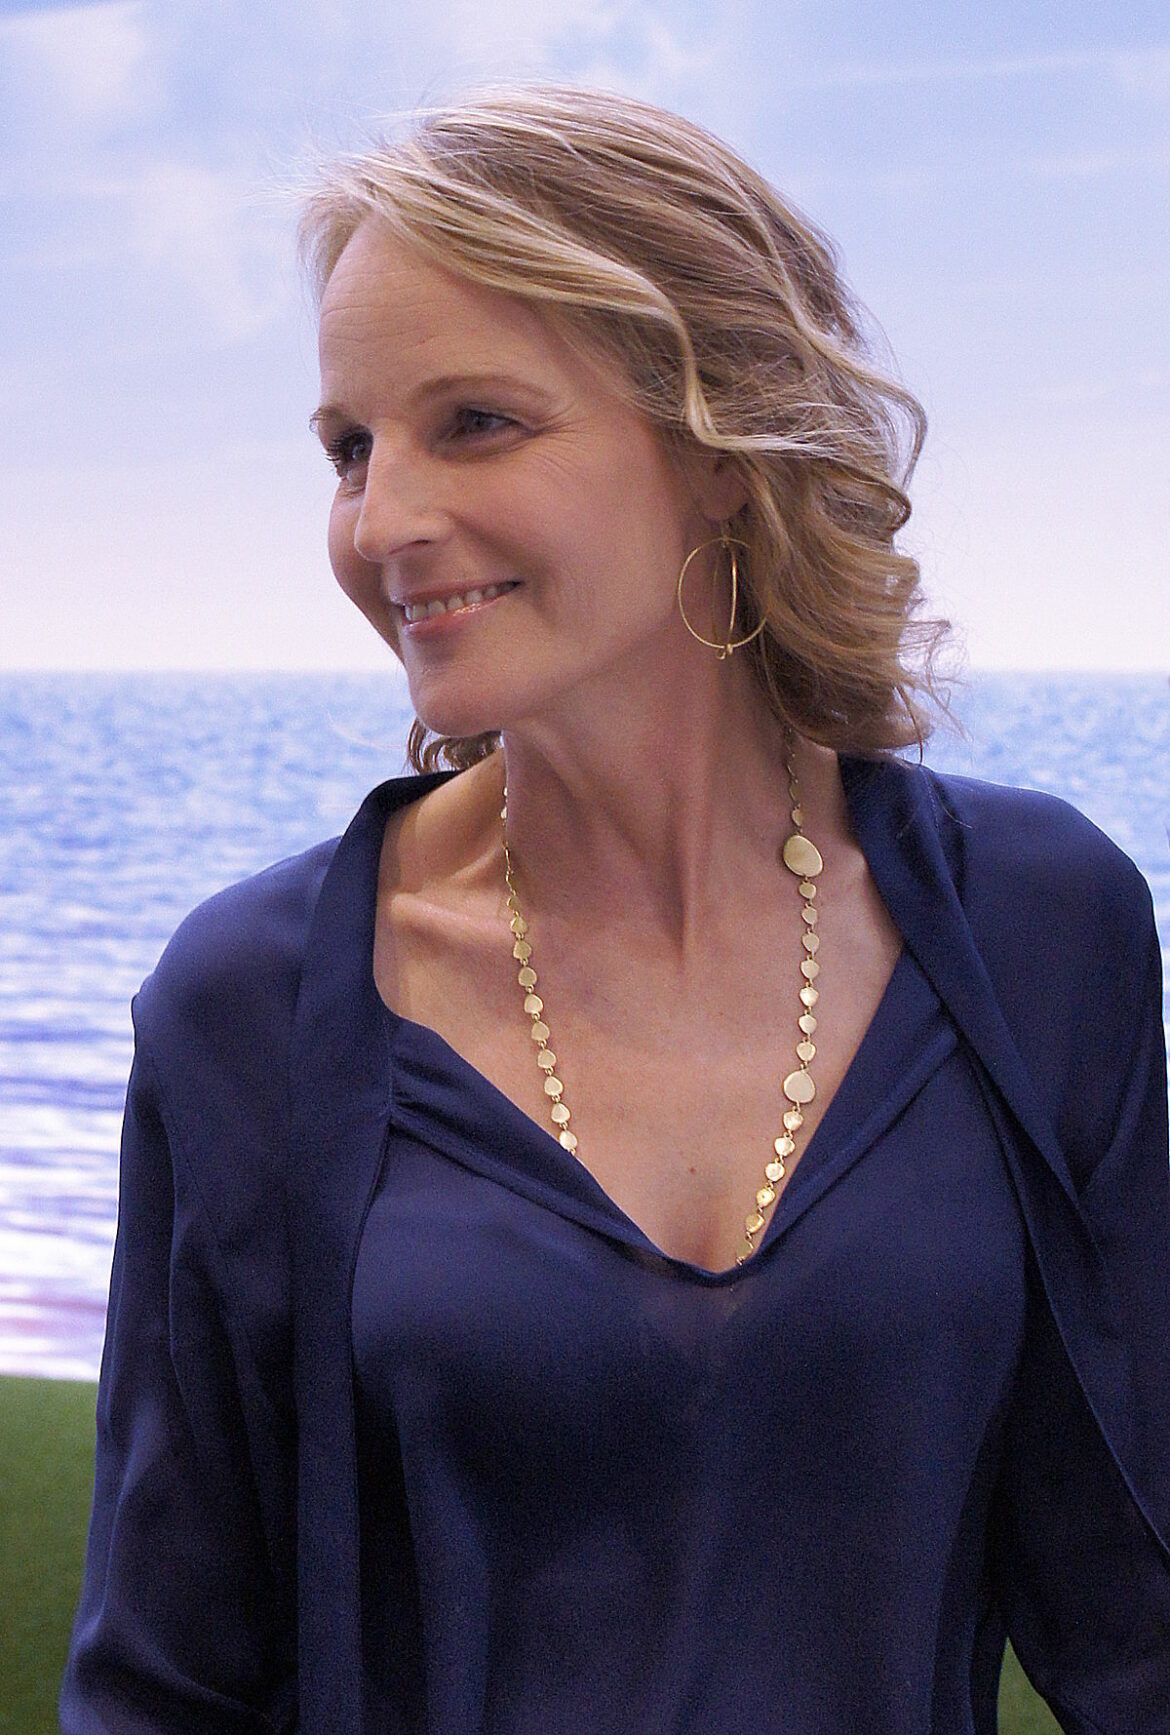 Everything about Helen Hunt